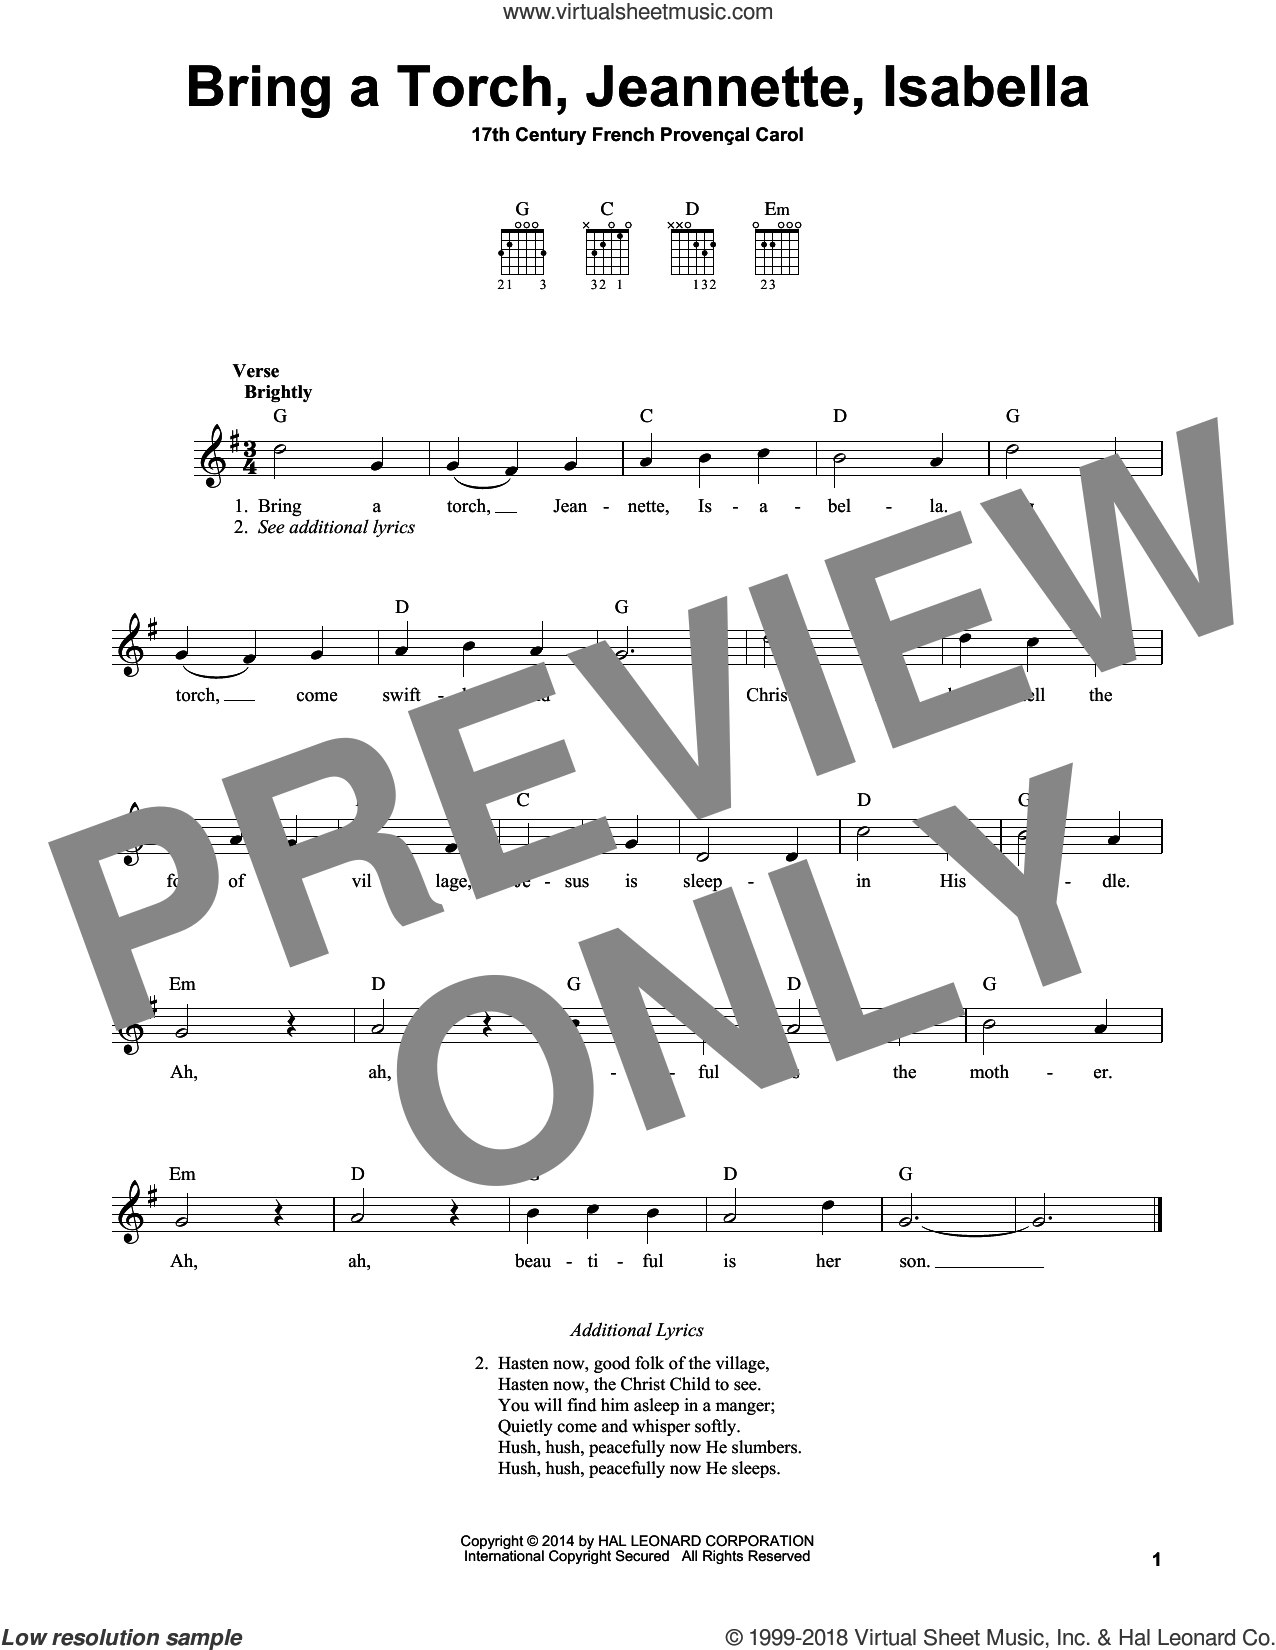 Bring A Torch, Jeannette, Isabella sheet music for guitar solo (chords) by Anonymous and Miscellaneous. Score Image Preview.